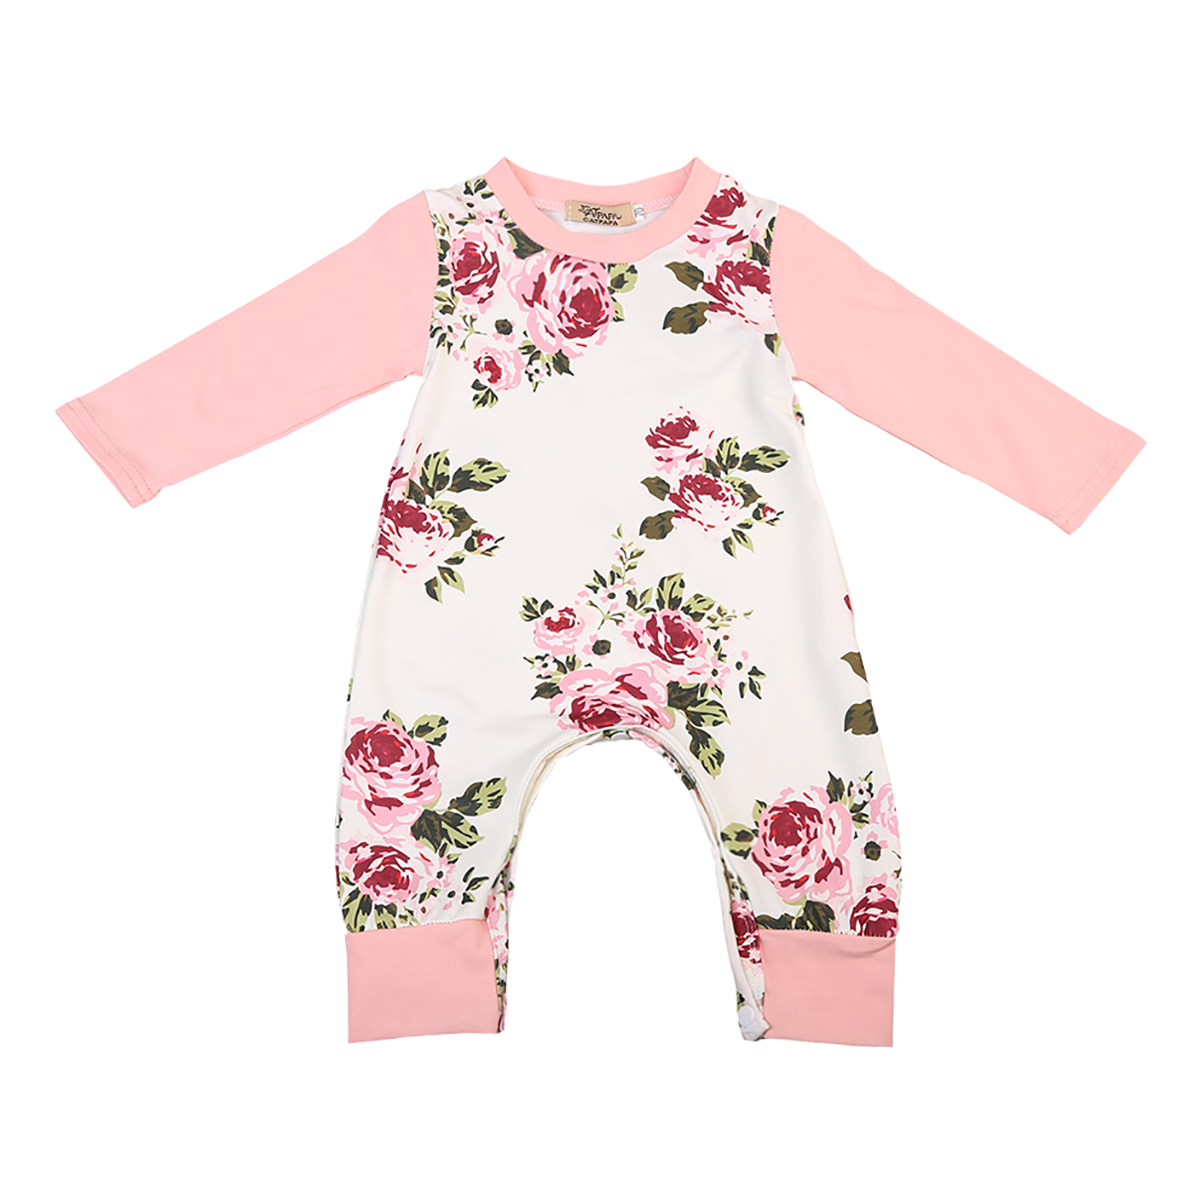 Newborn Kids Baby Girls Floral Romper Jumpsuit Clothes Outfits 0-24M